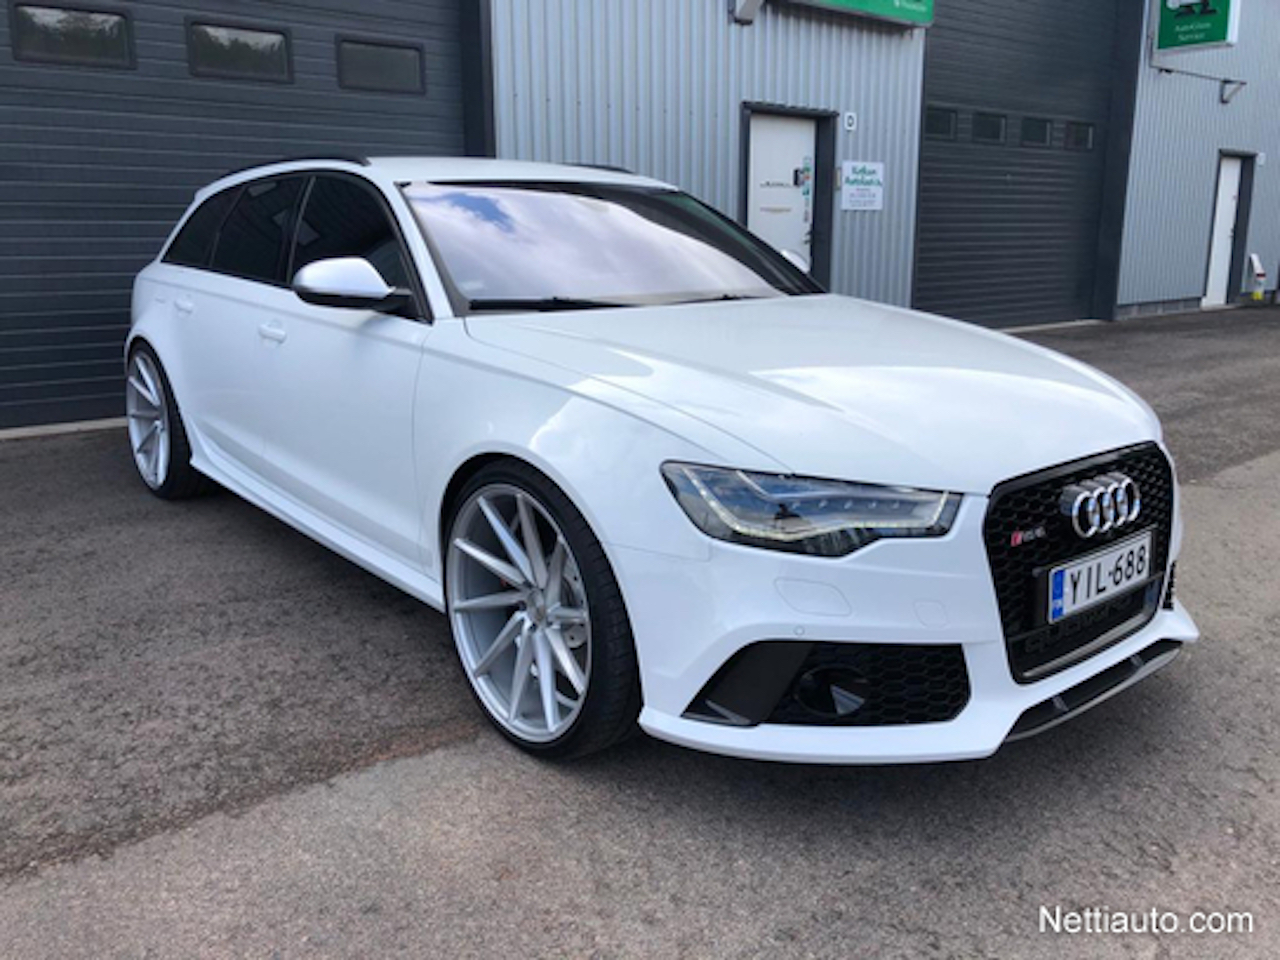 Kimi Raikkonen's Audi RS6 For Sale